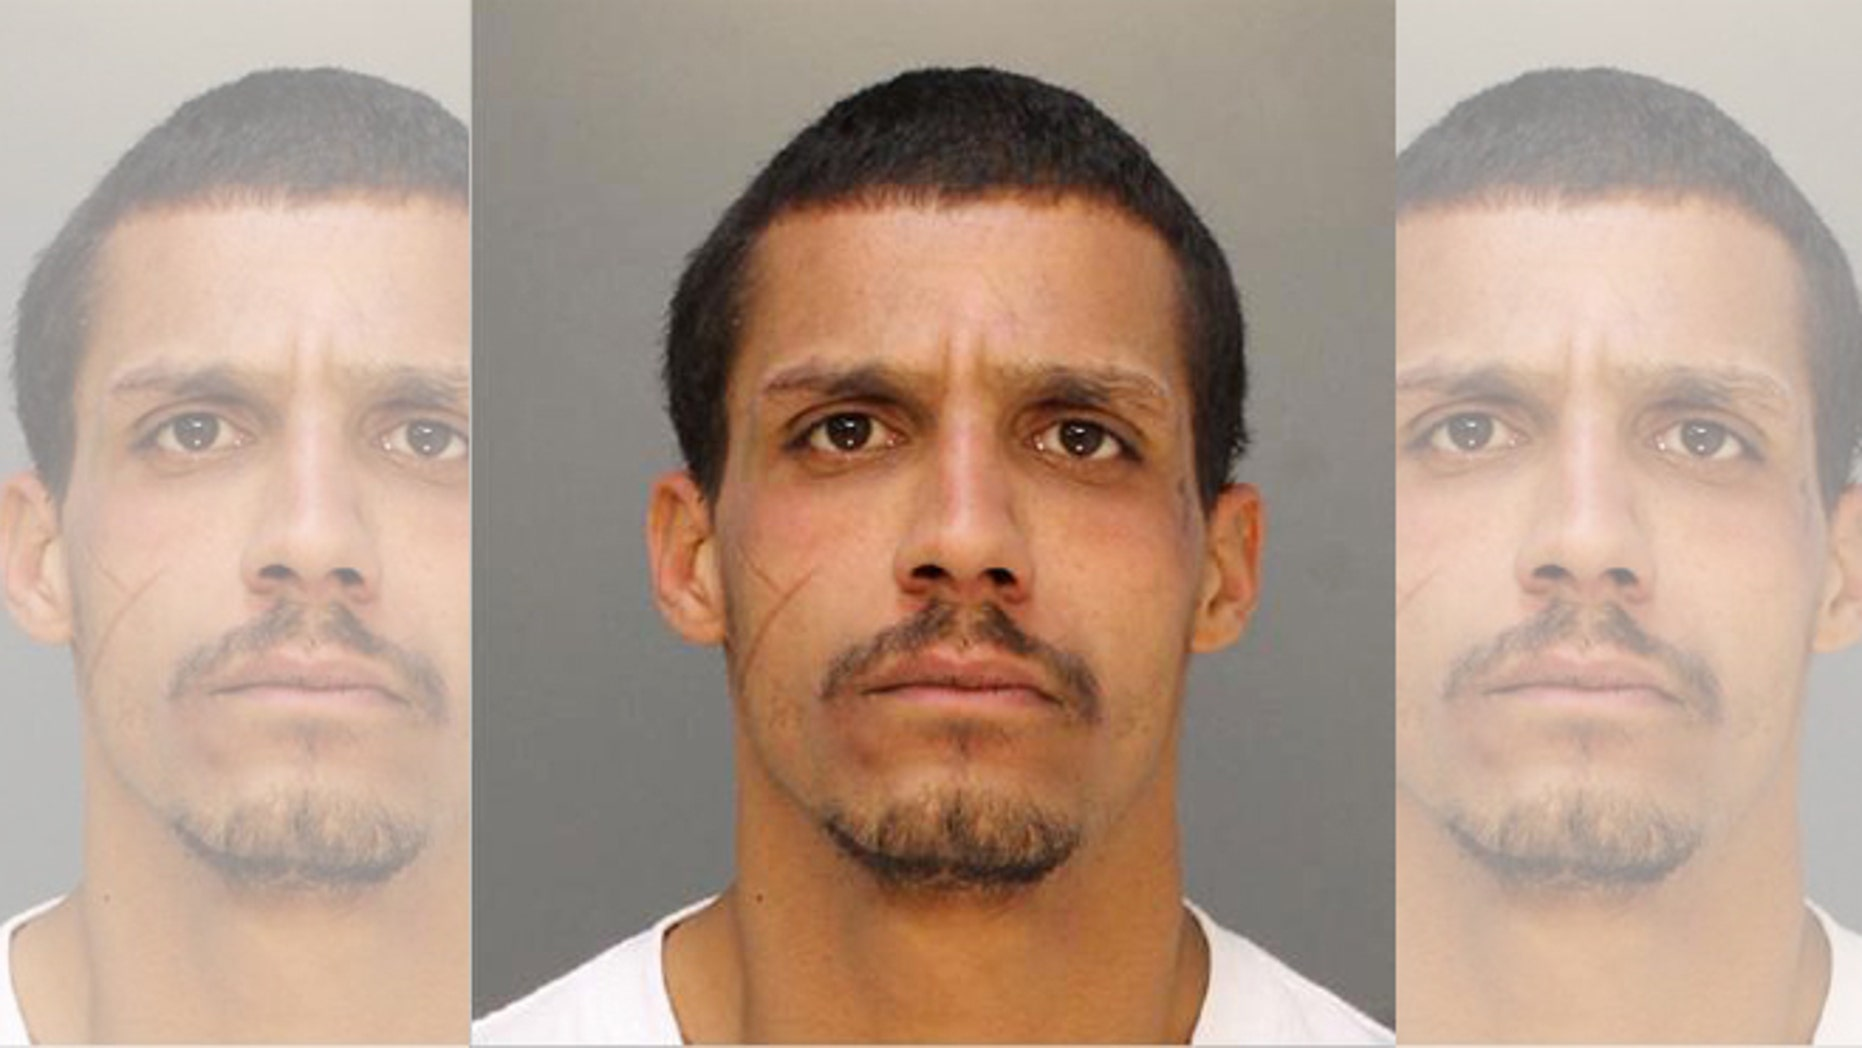 This undated photo provided by the Philadelphia Police Department shows Manuel Baez. Philadelphia police say they have arrested the homeless prostitute in the strangulation of a 75-year-old psychiatrist in a city hotel room. Police said Wednesday, Dec. 23, 2015, that Baez was being charged with murder in the death of Dr. Howard Baker at the Rodeway Inn. (Philadelphia Police Department via AP)